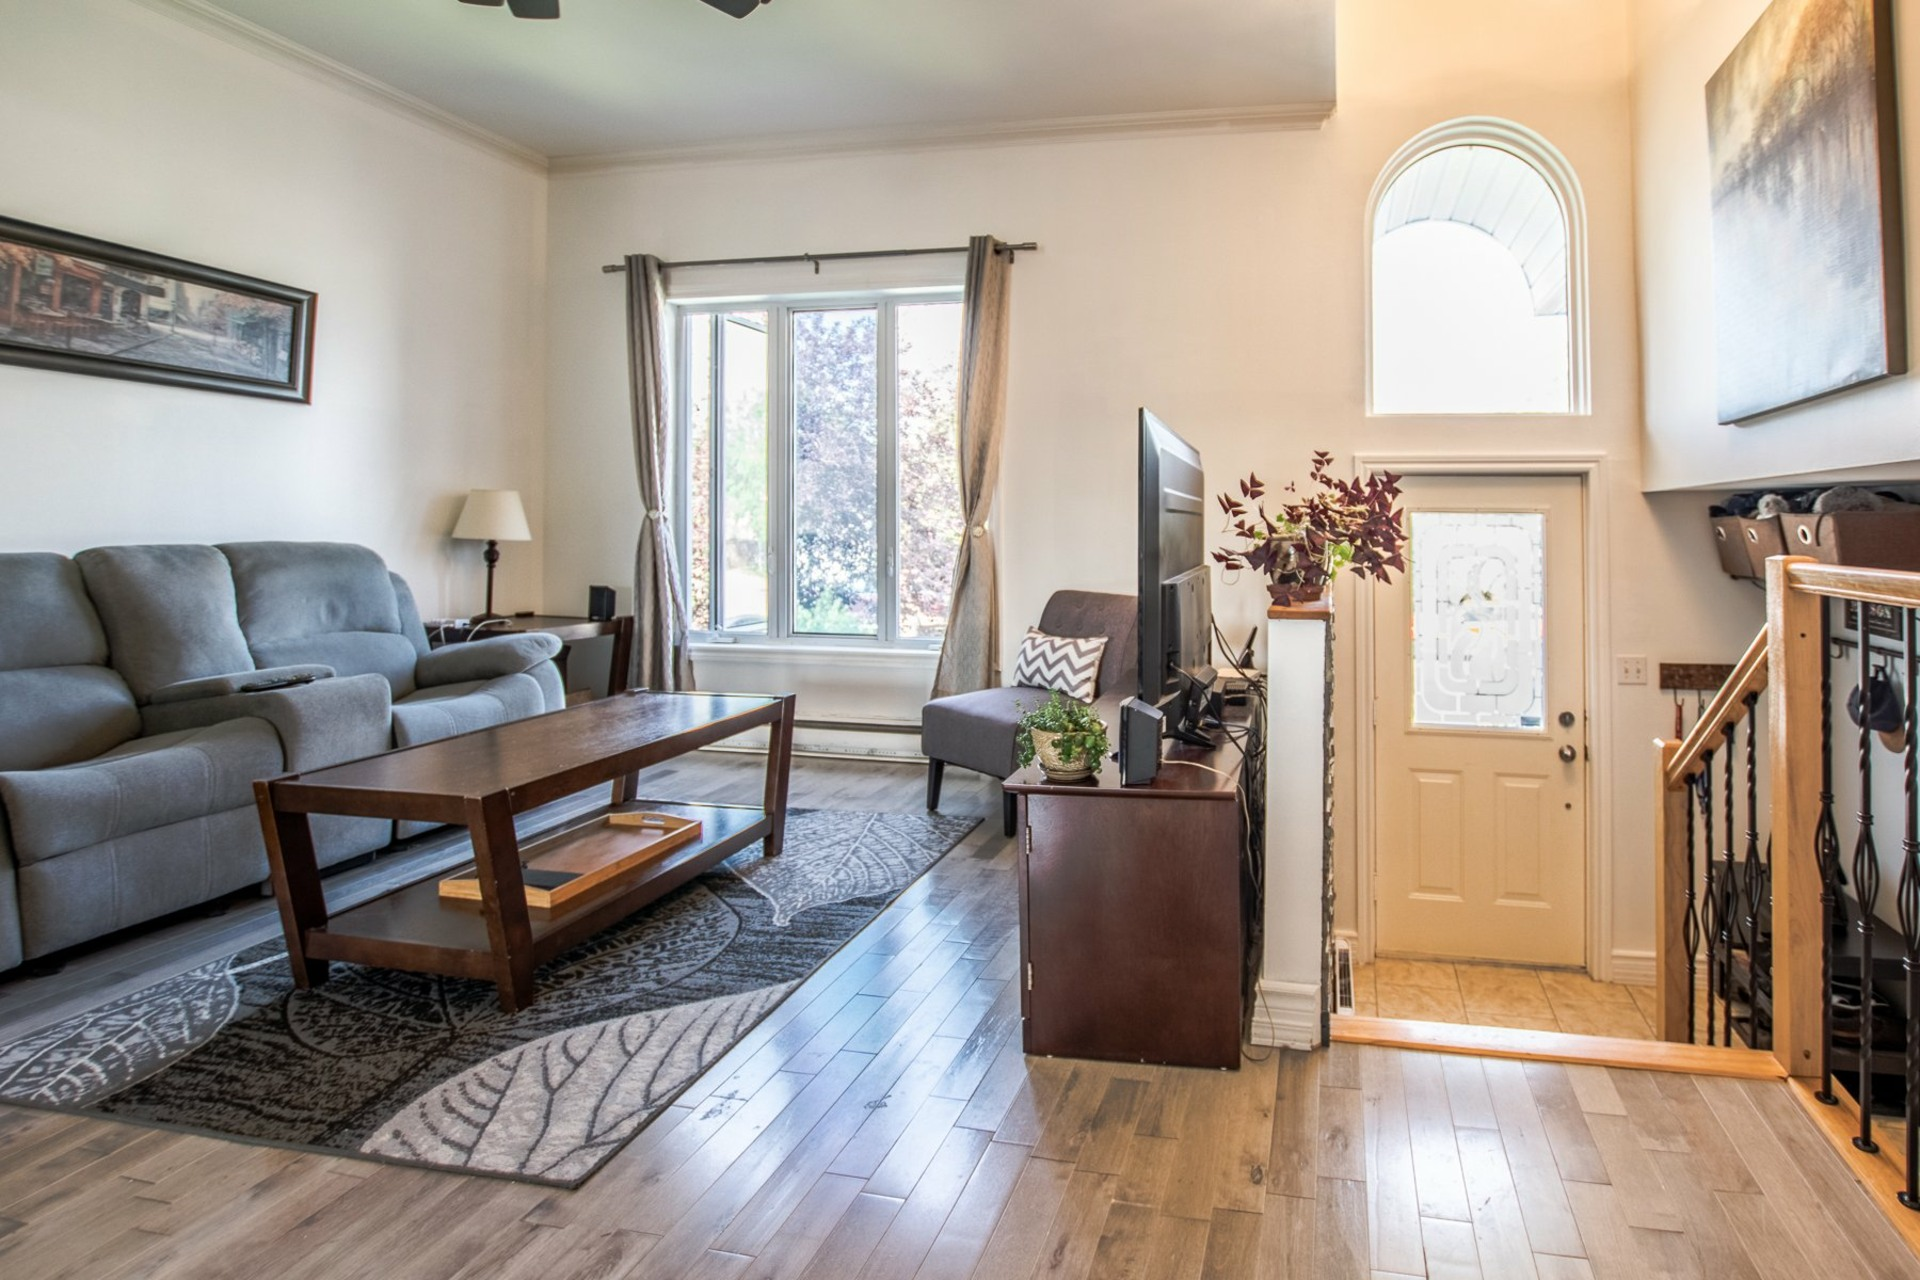 image 2 - House For sale Sainte-Catherine - 8 rooms